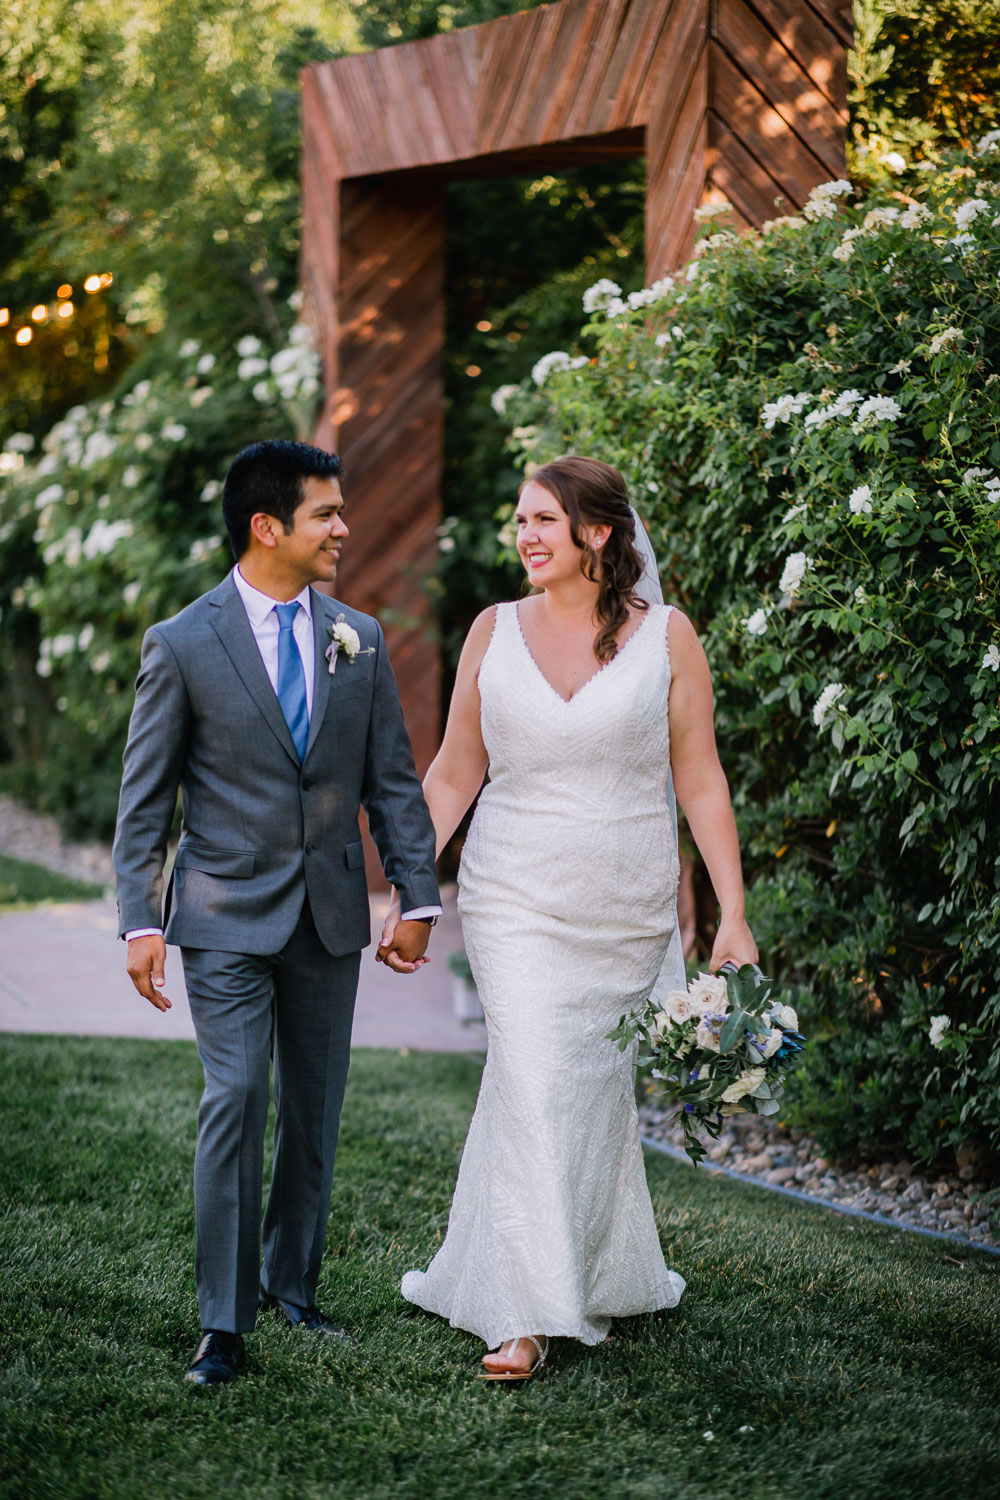 Best-Paso-Robles-California-Wedding-Photographer-252.jpg